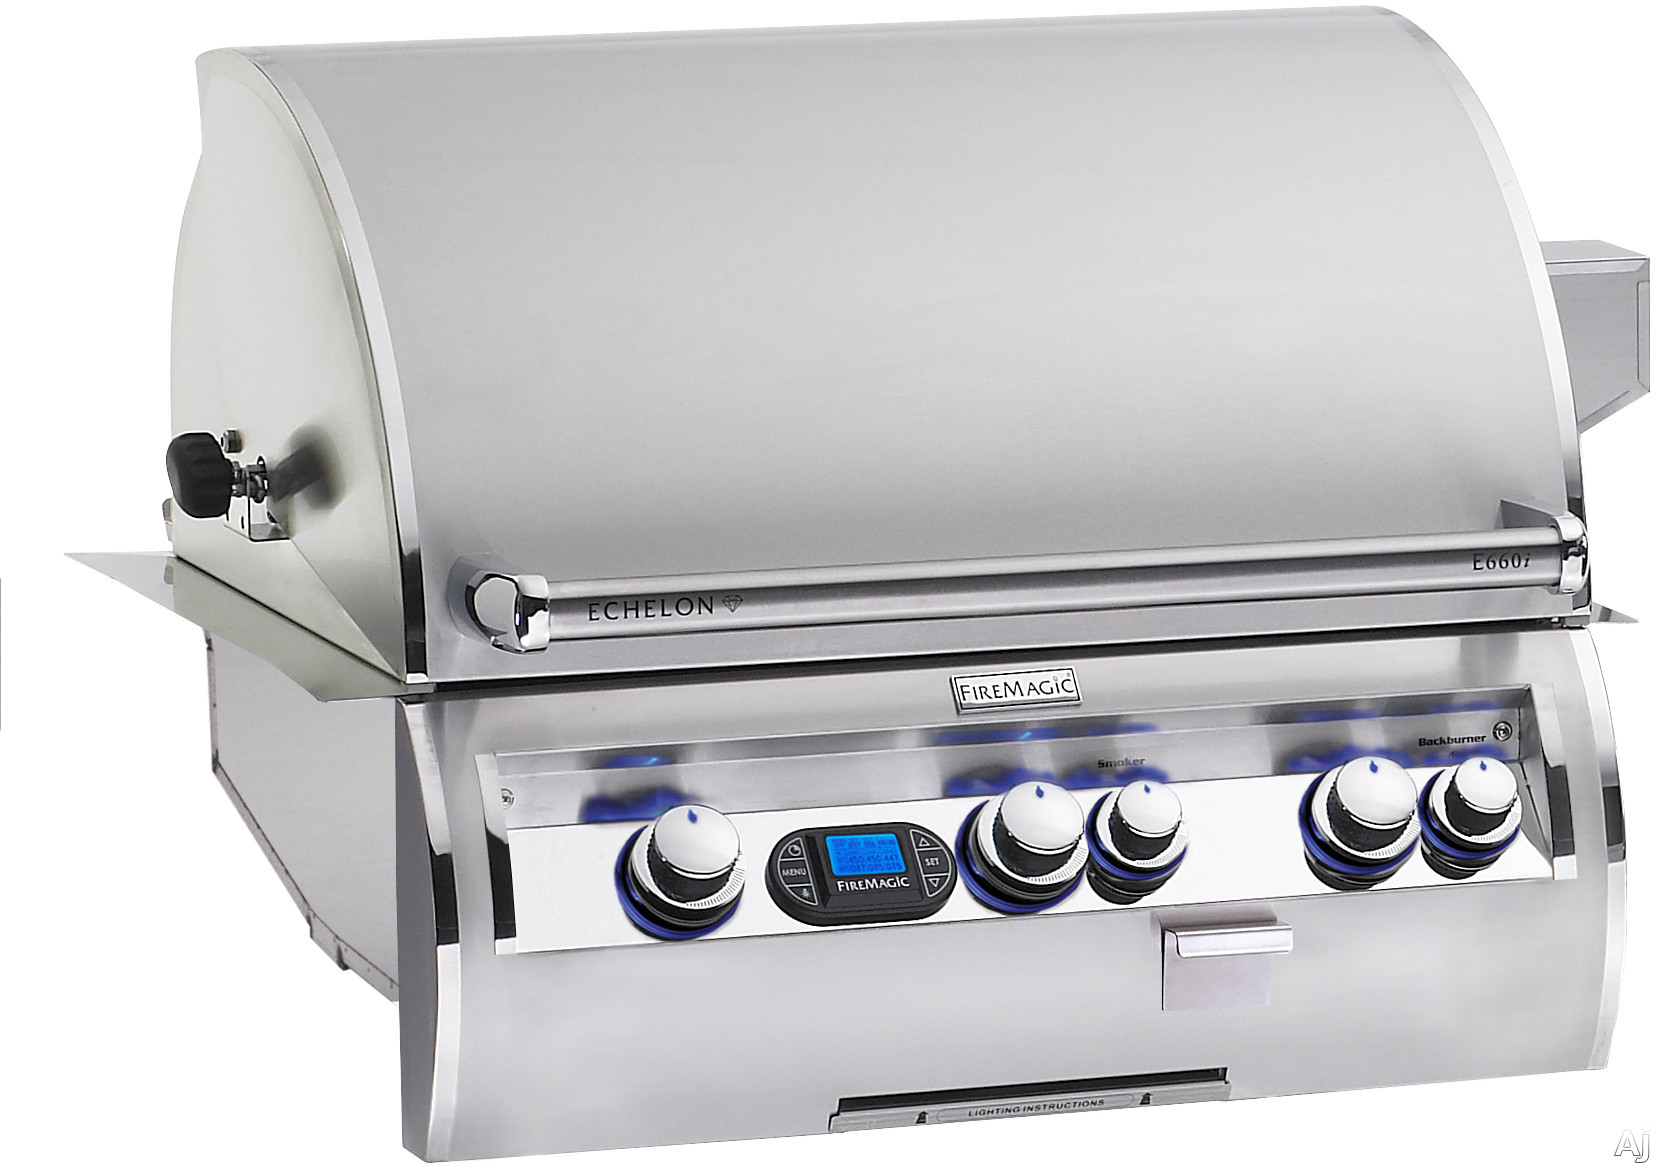 Fire Magic Echelon Collection E660I4A1N 30 Inch Built-in Gas Grill with 660 sq. in. Cooking Surface, 78,000 BTU Primary Burners, 11,000 BTU Back Burner and 3,000 BTU Wood Chip Smoker: Natural Gas, Dig